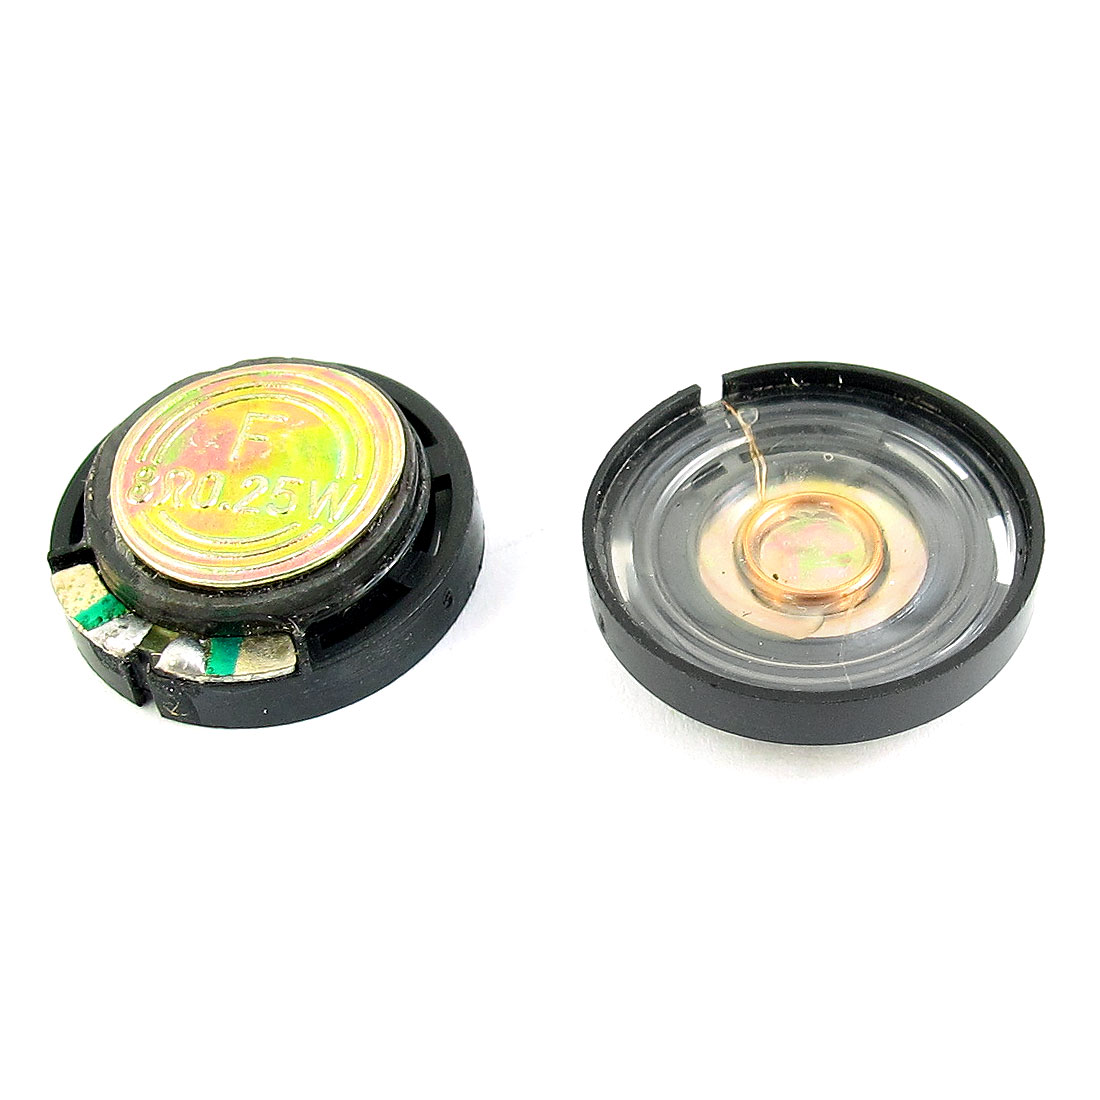 2 Pcs 0.25W 8 Ohm 21mm Diameter Plastic Shell Magnet Speaker Loudspeaker Horn for Radio Interphone Electric Toys